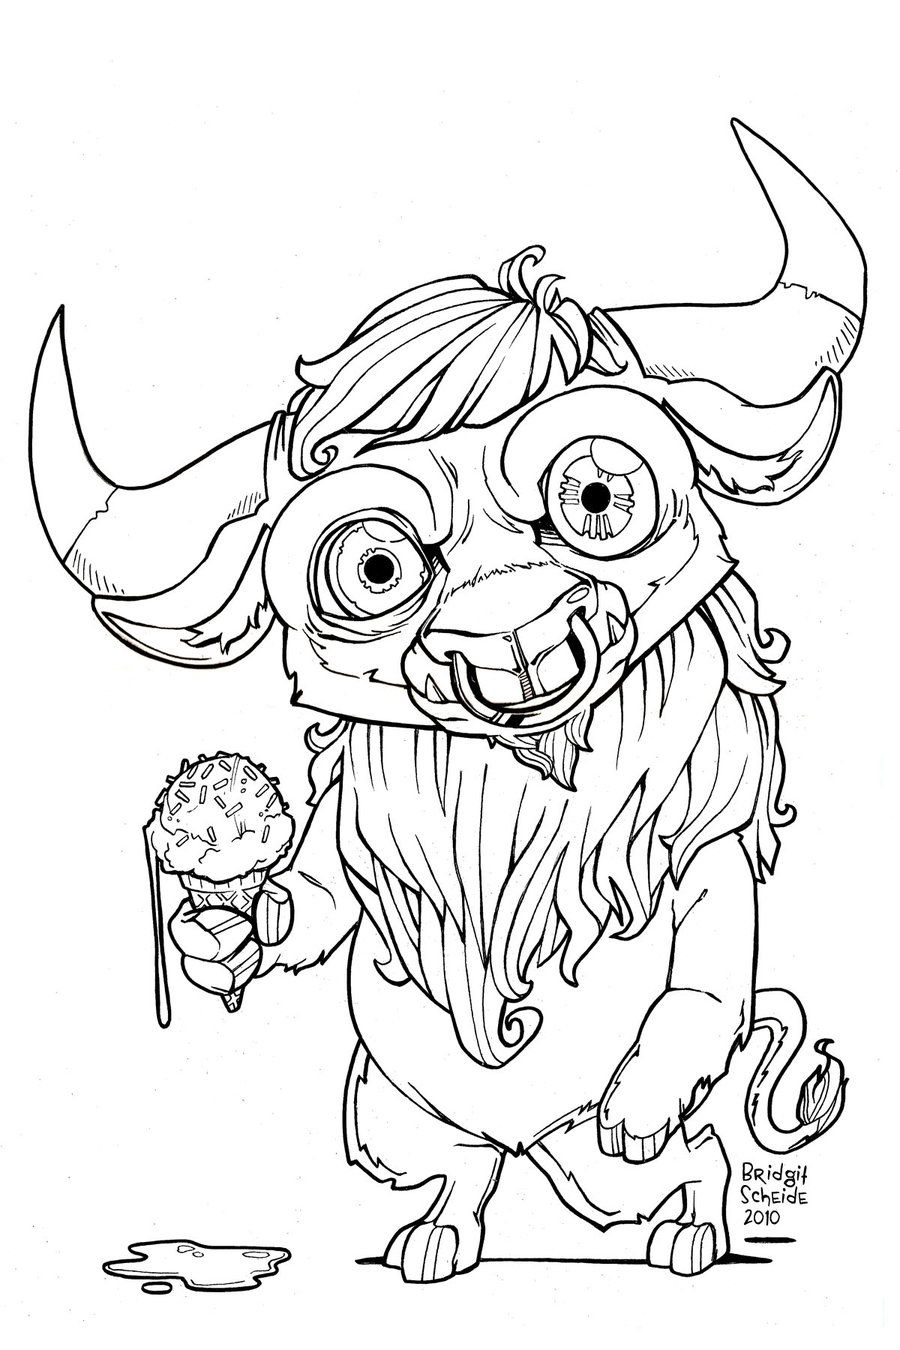 Minotaur Colouring Page With Images Coloring Pages Color